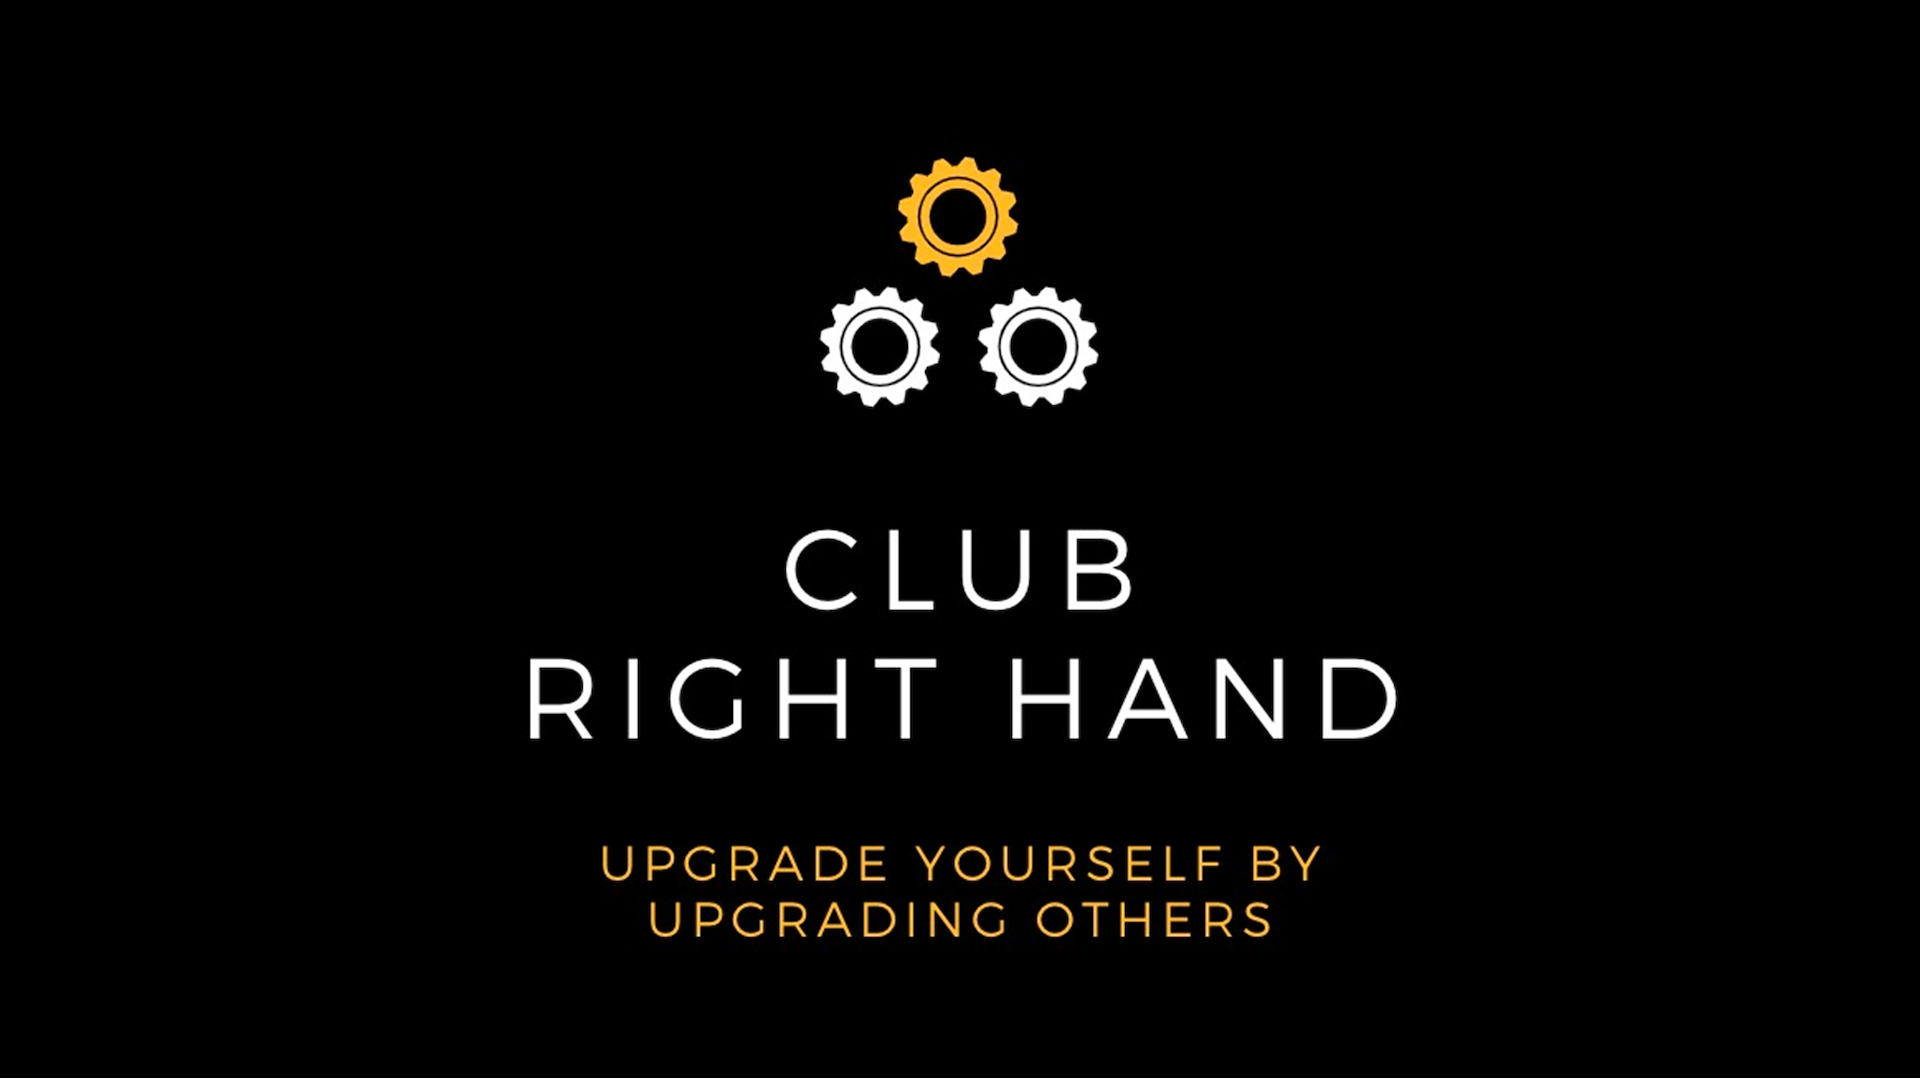 CLUB RIGHT HAND